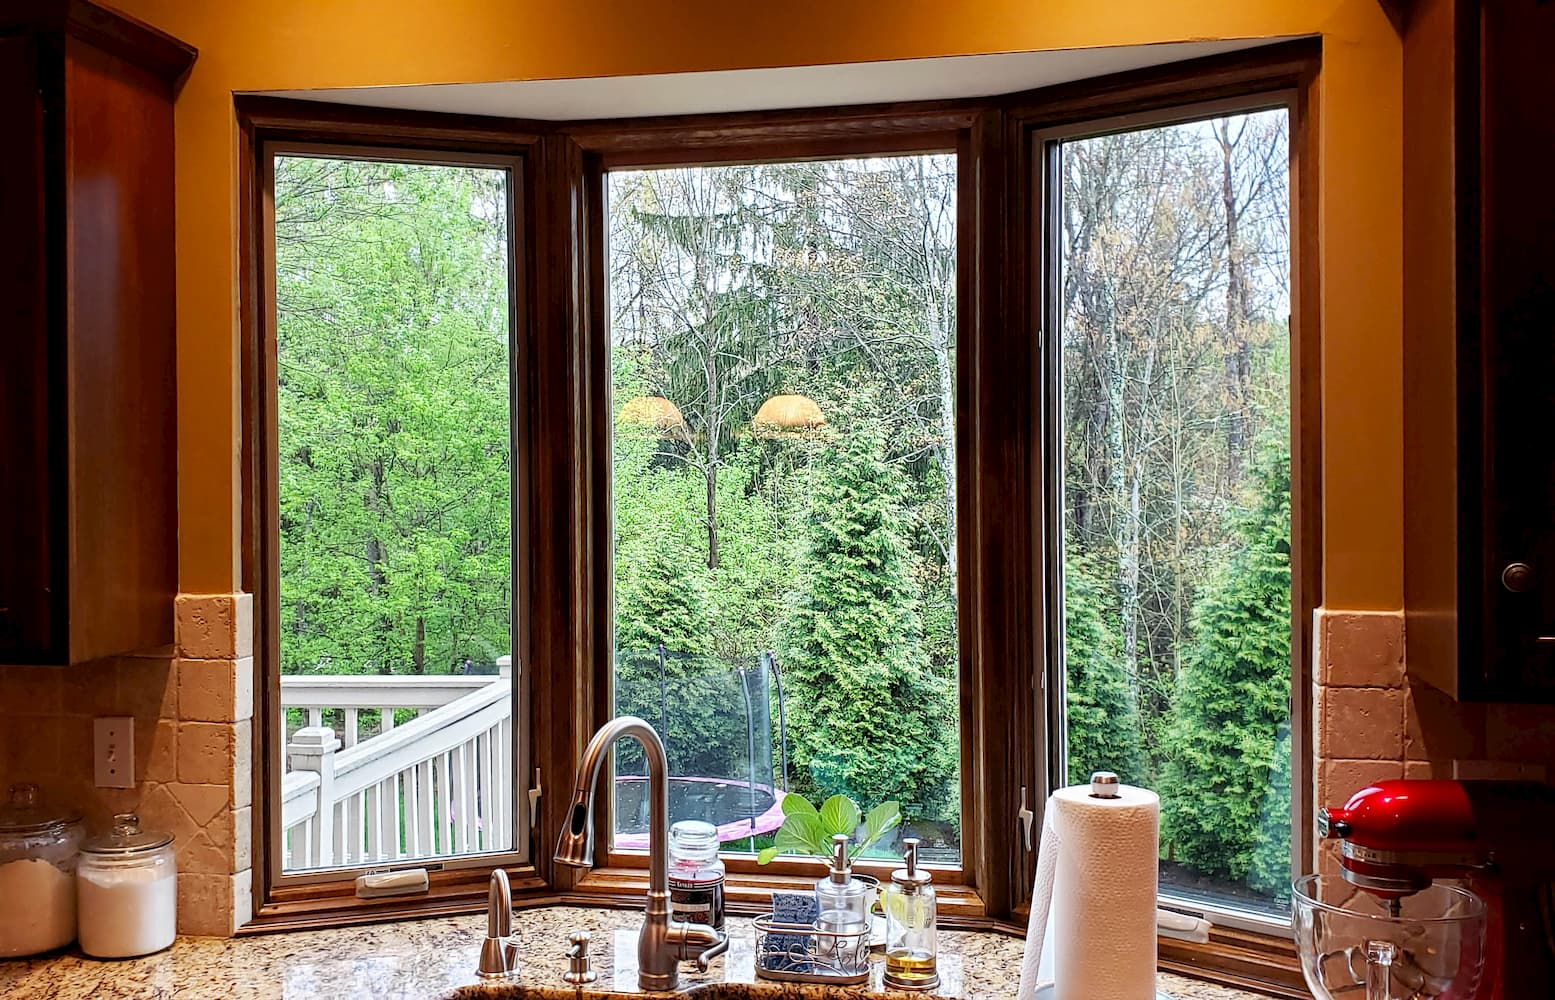 Interior view of new wood bay window over kitchen sink